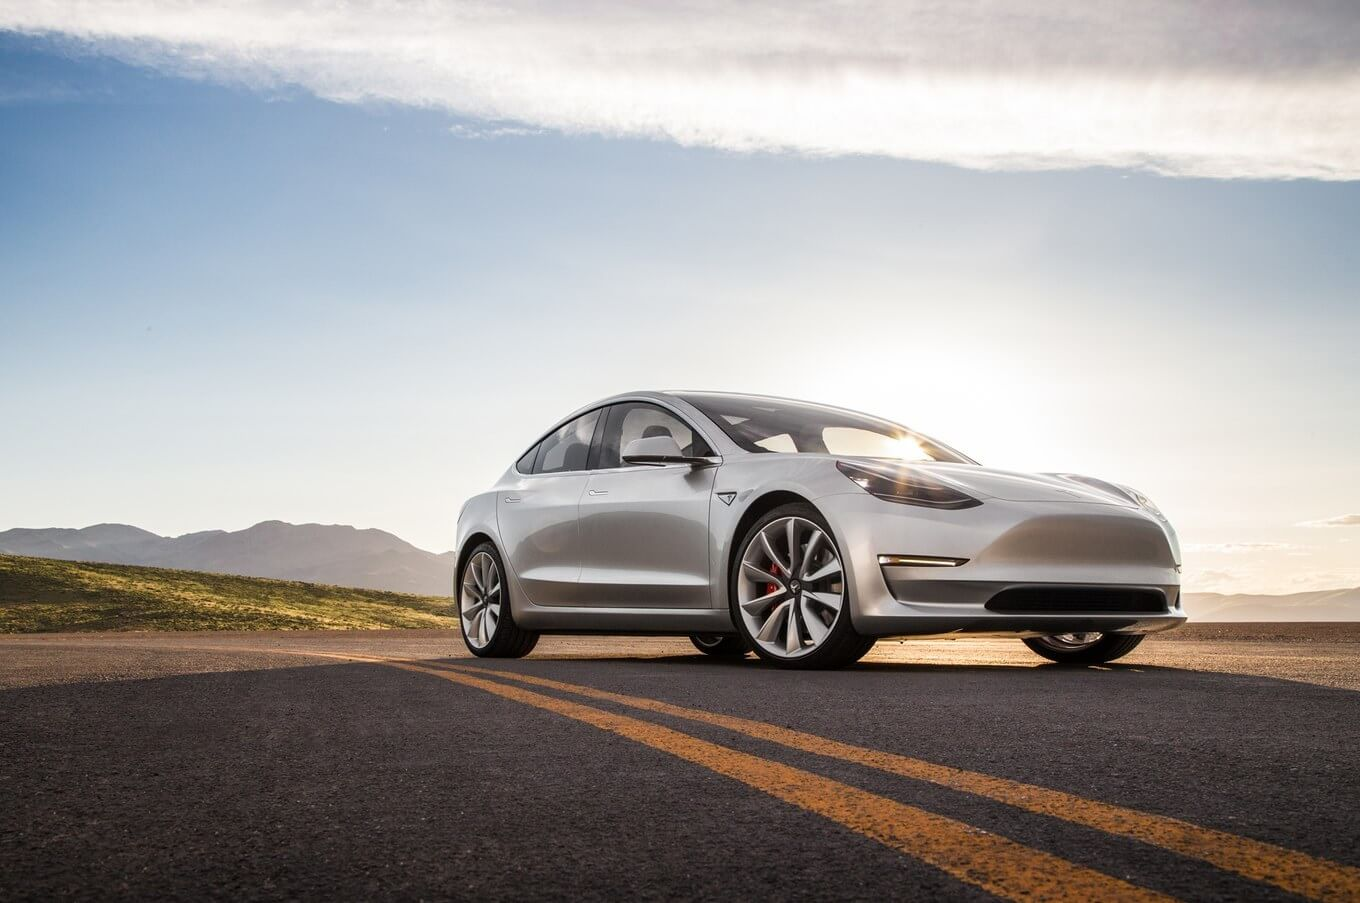 Consumer Reports retracts Tesla Model 3 recommendation due